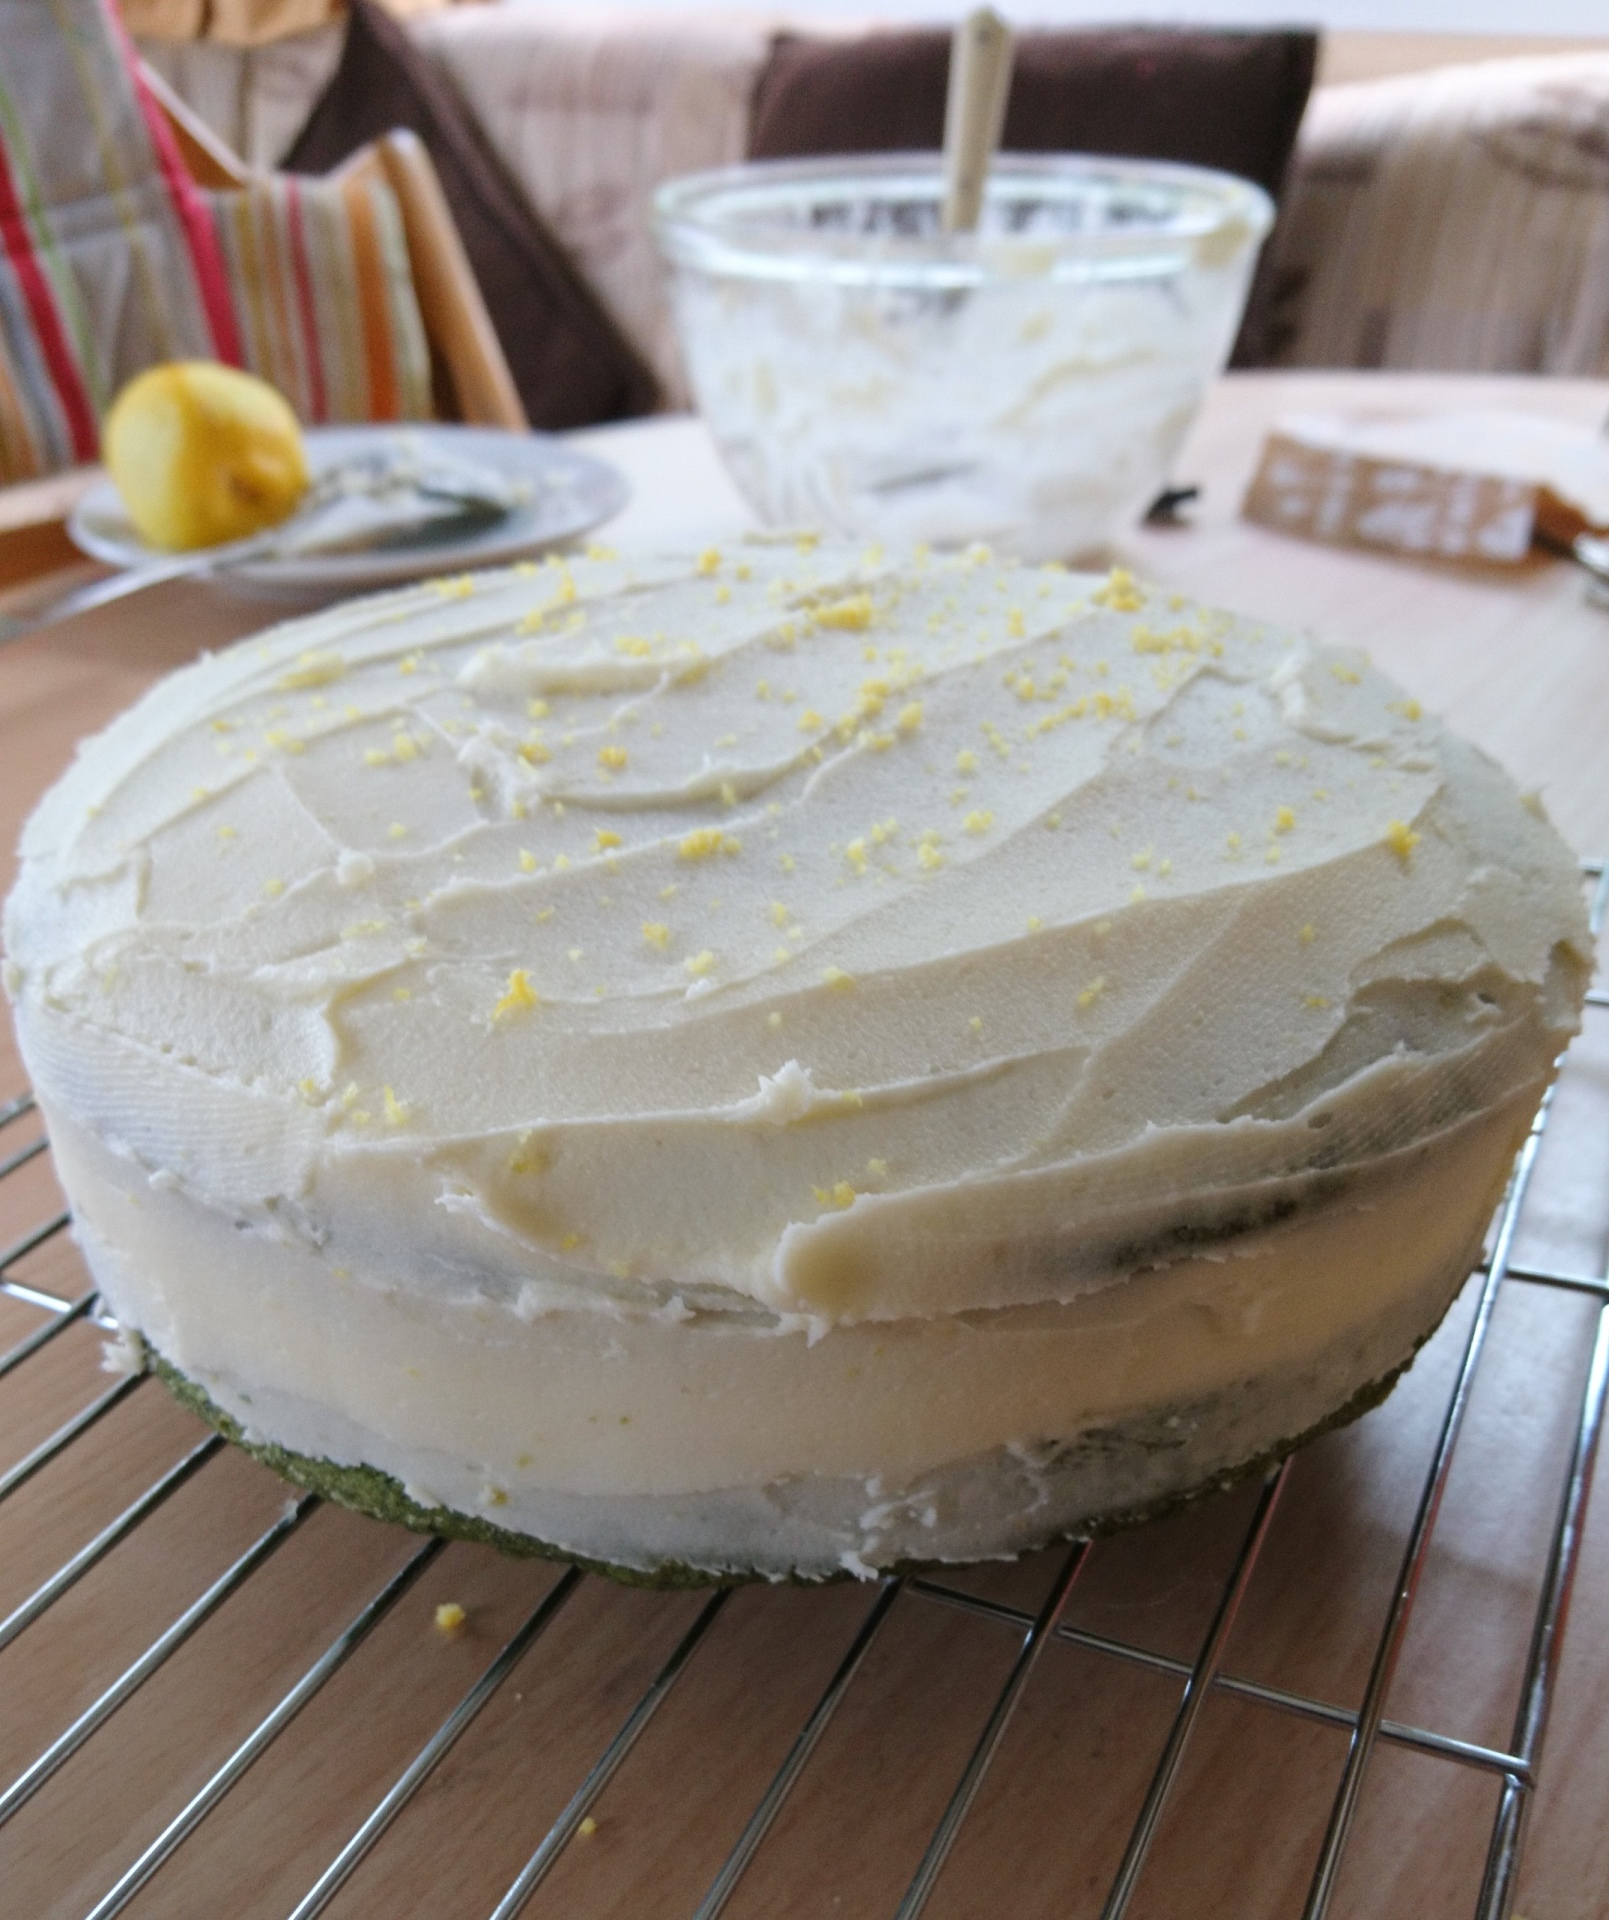 Nettle & Lemon Cake Recipe